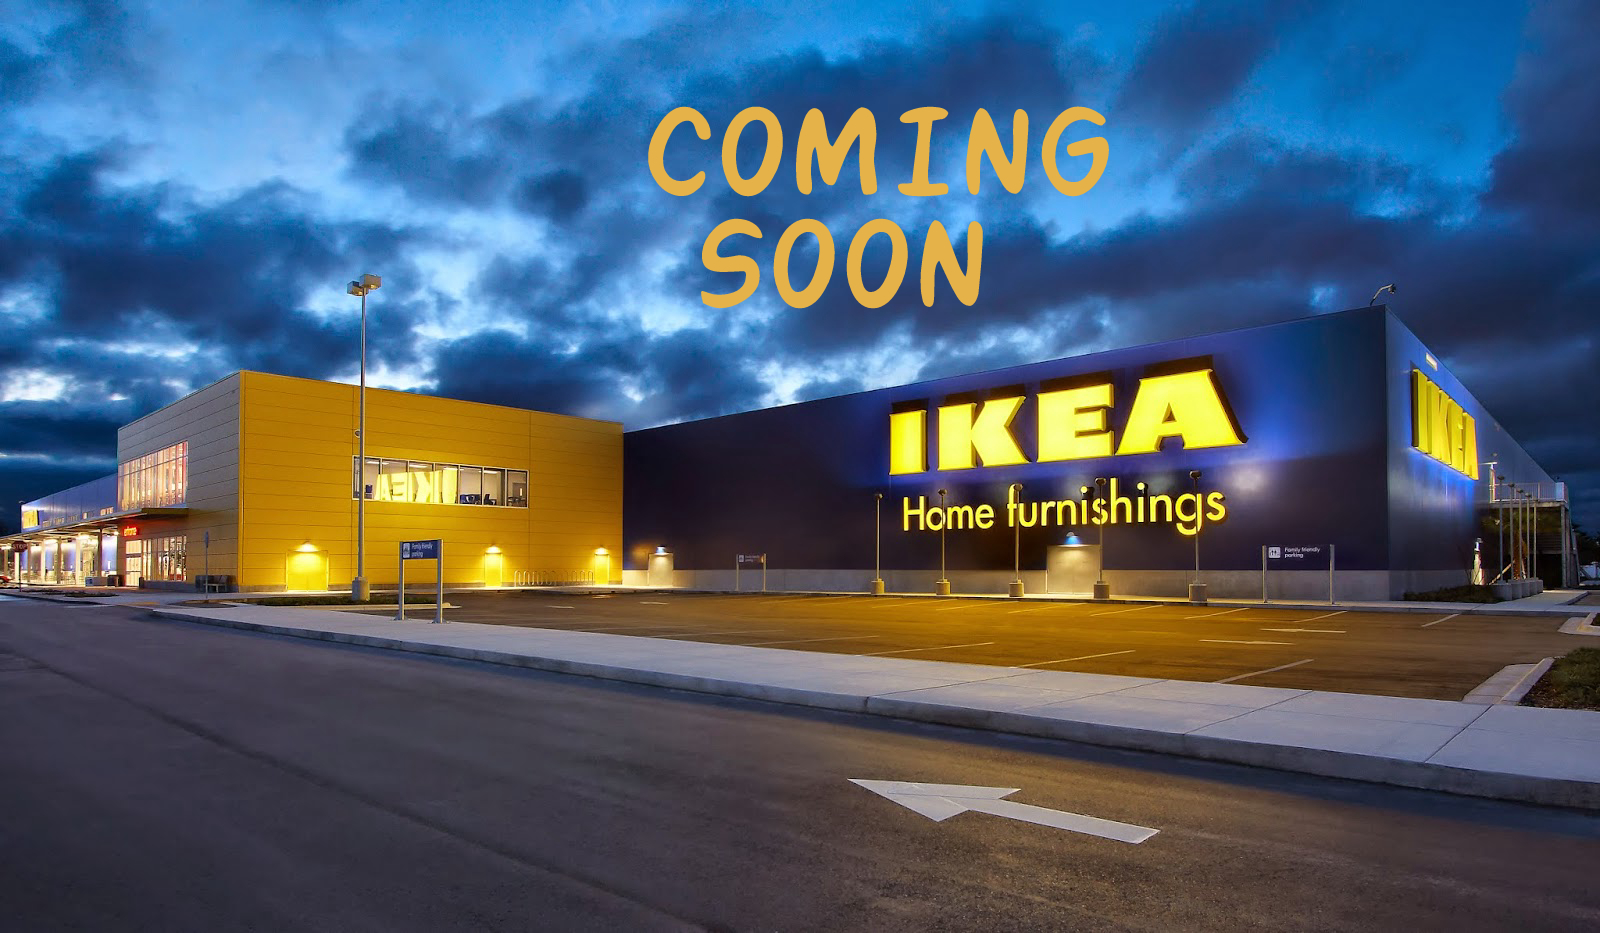 The Wait Is Finally Going To End As Ikea Will Be Launching